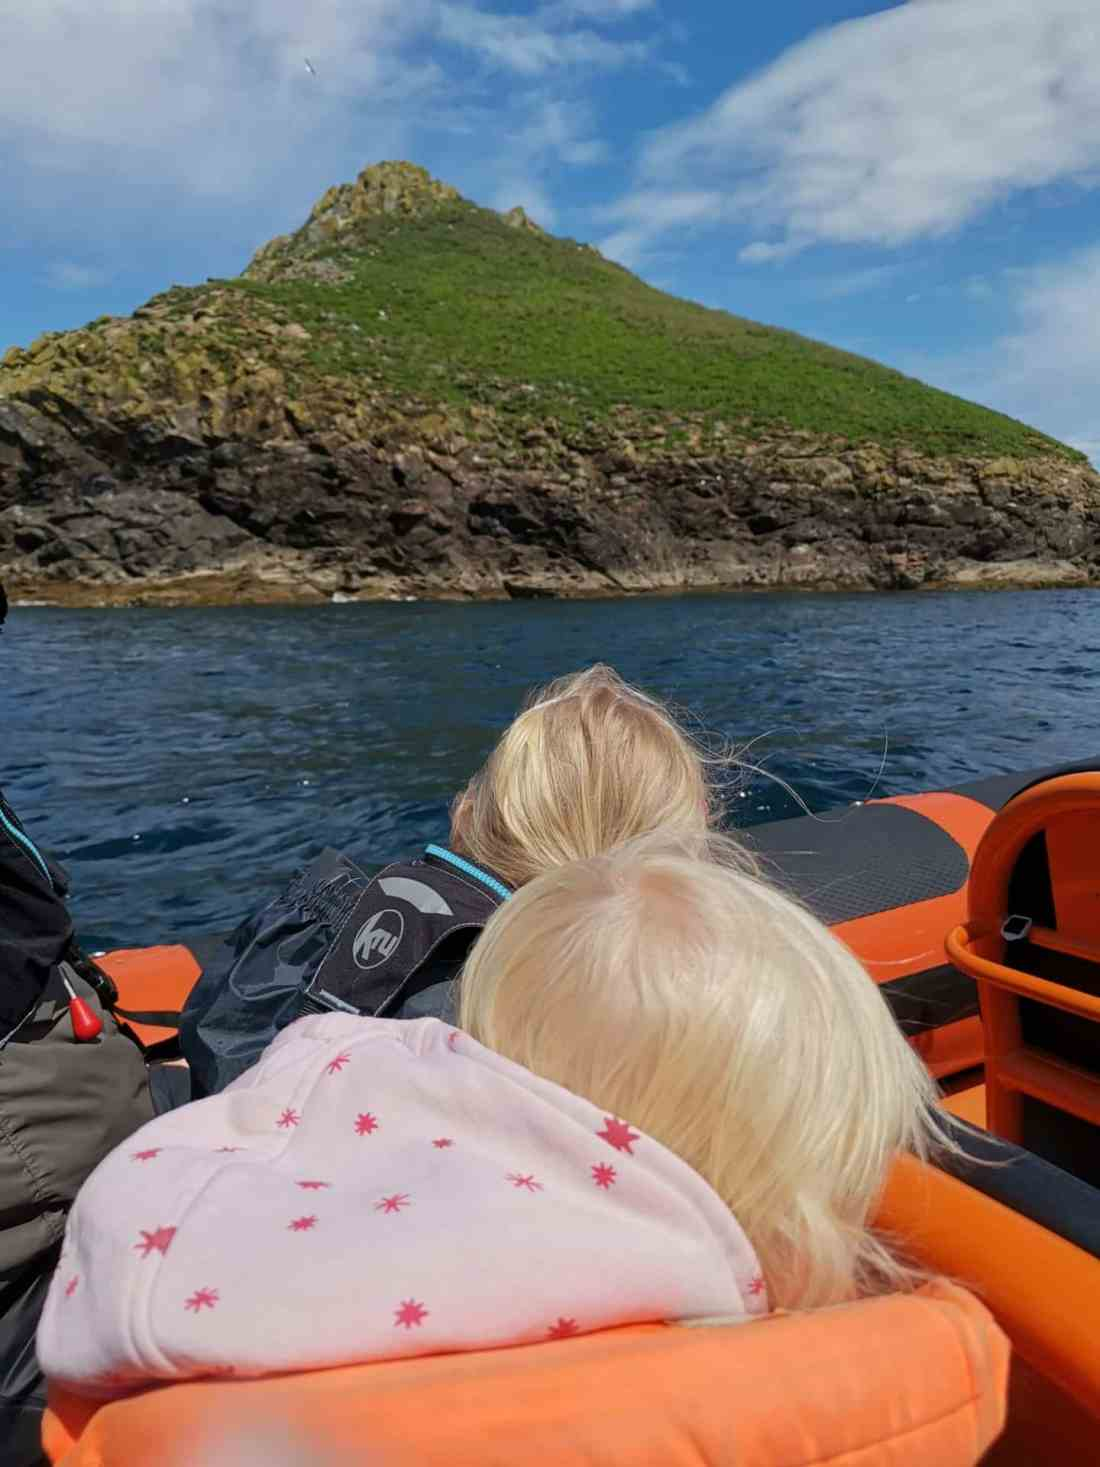 Taking our toddlers on a saline safari trip from Padstow to see seals and puffins